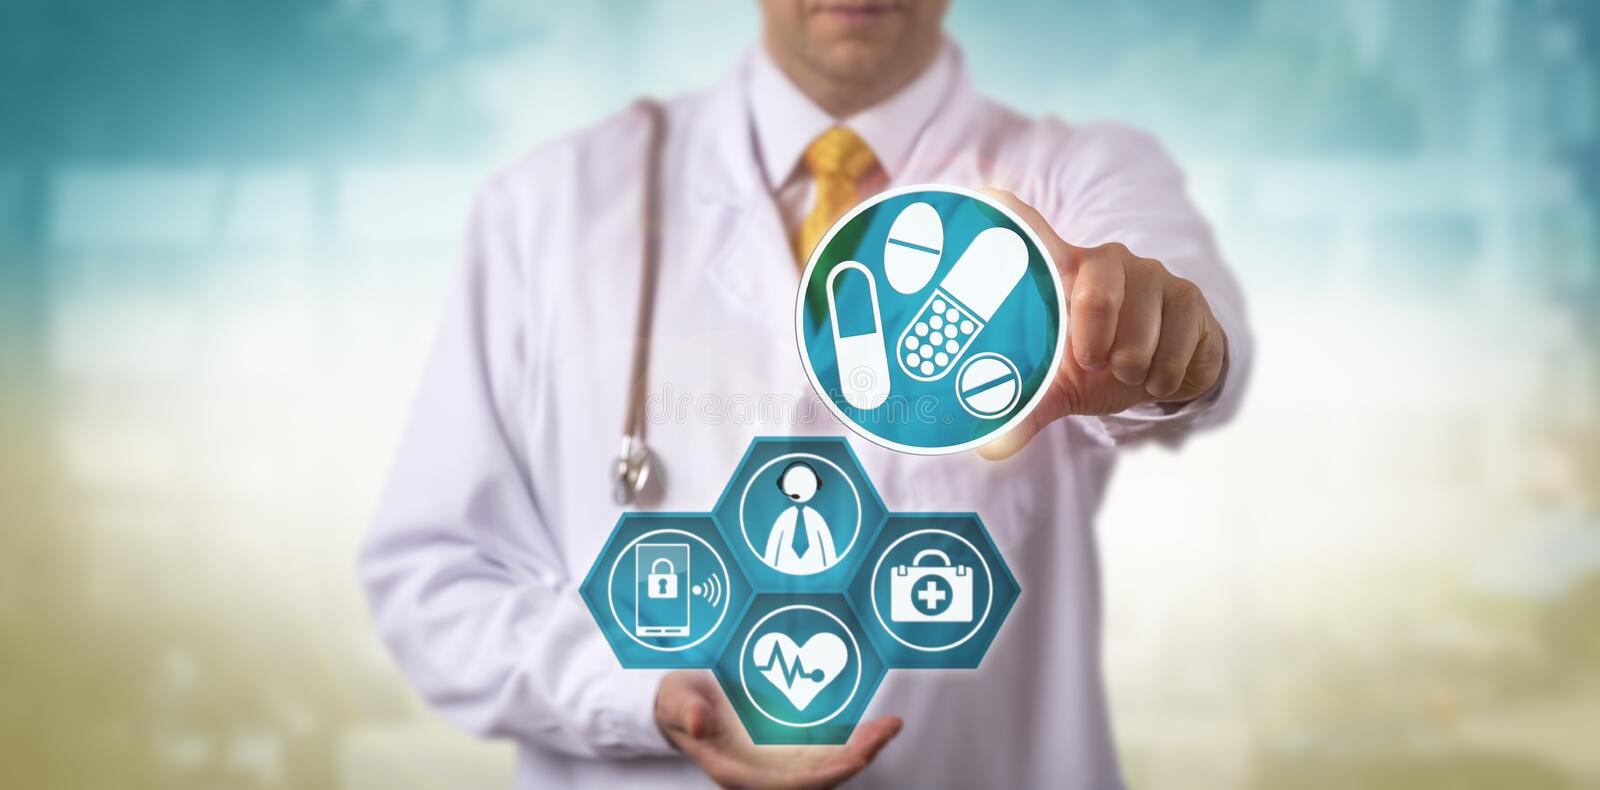 Doctor Offering Telemedicine Prescription Update. Unrecognizable doctor offering a prescription update to a male patient via internet connection and smart phone royalty free stock image